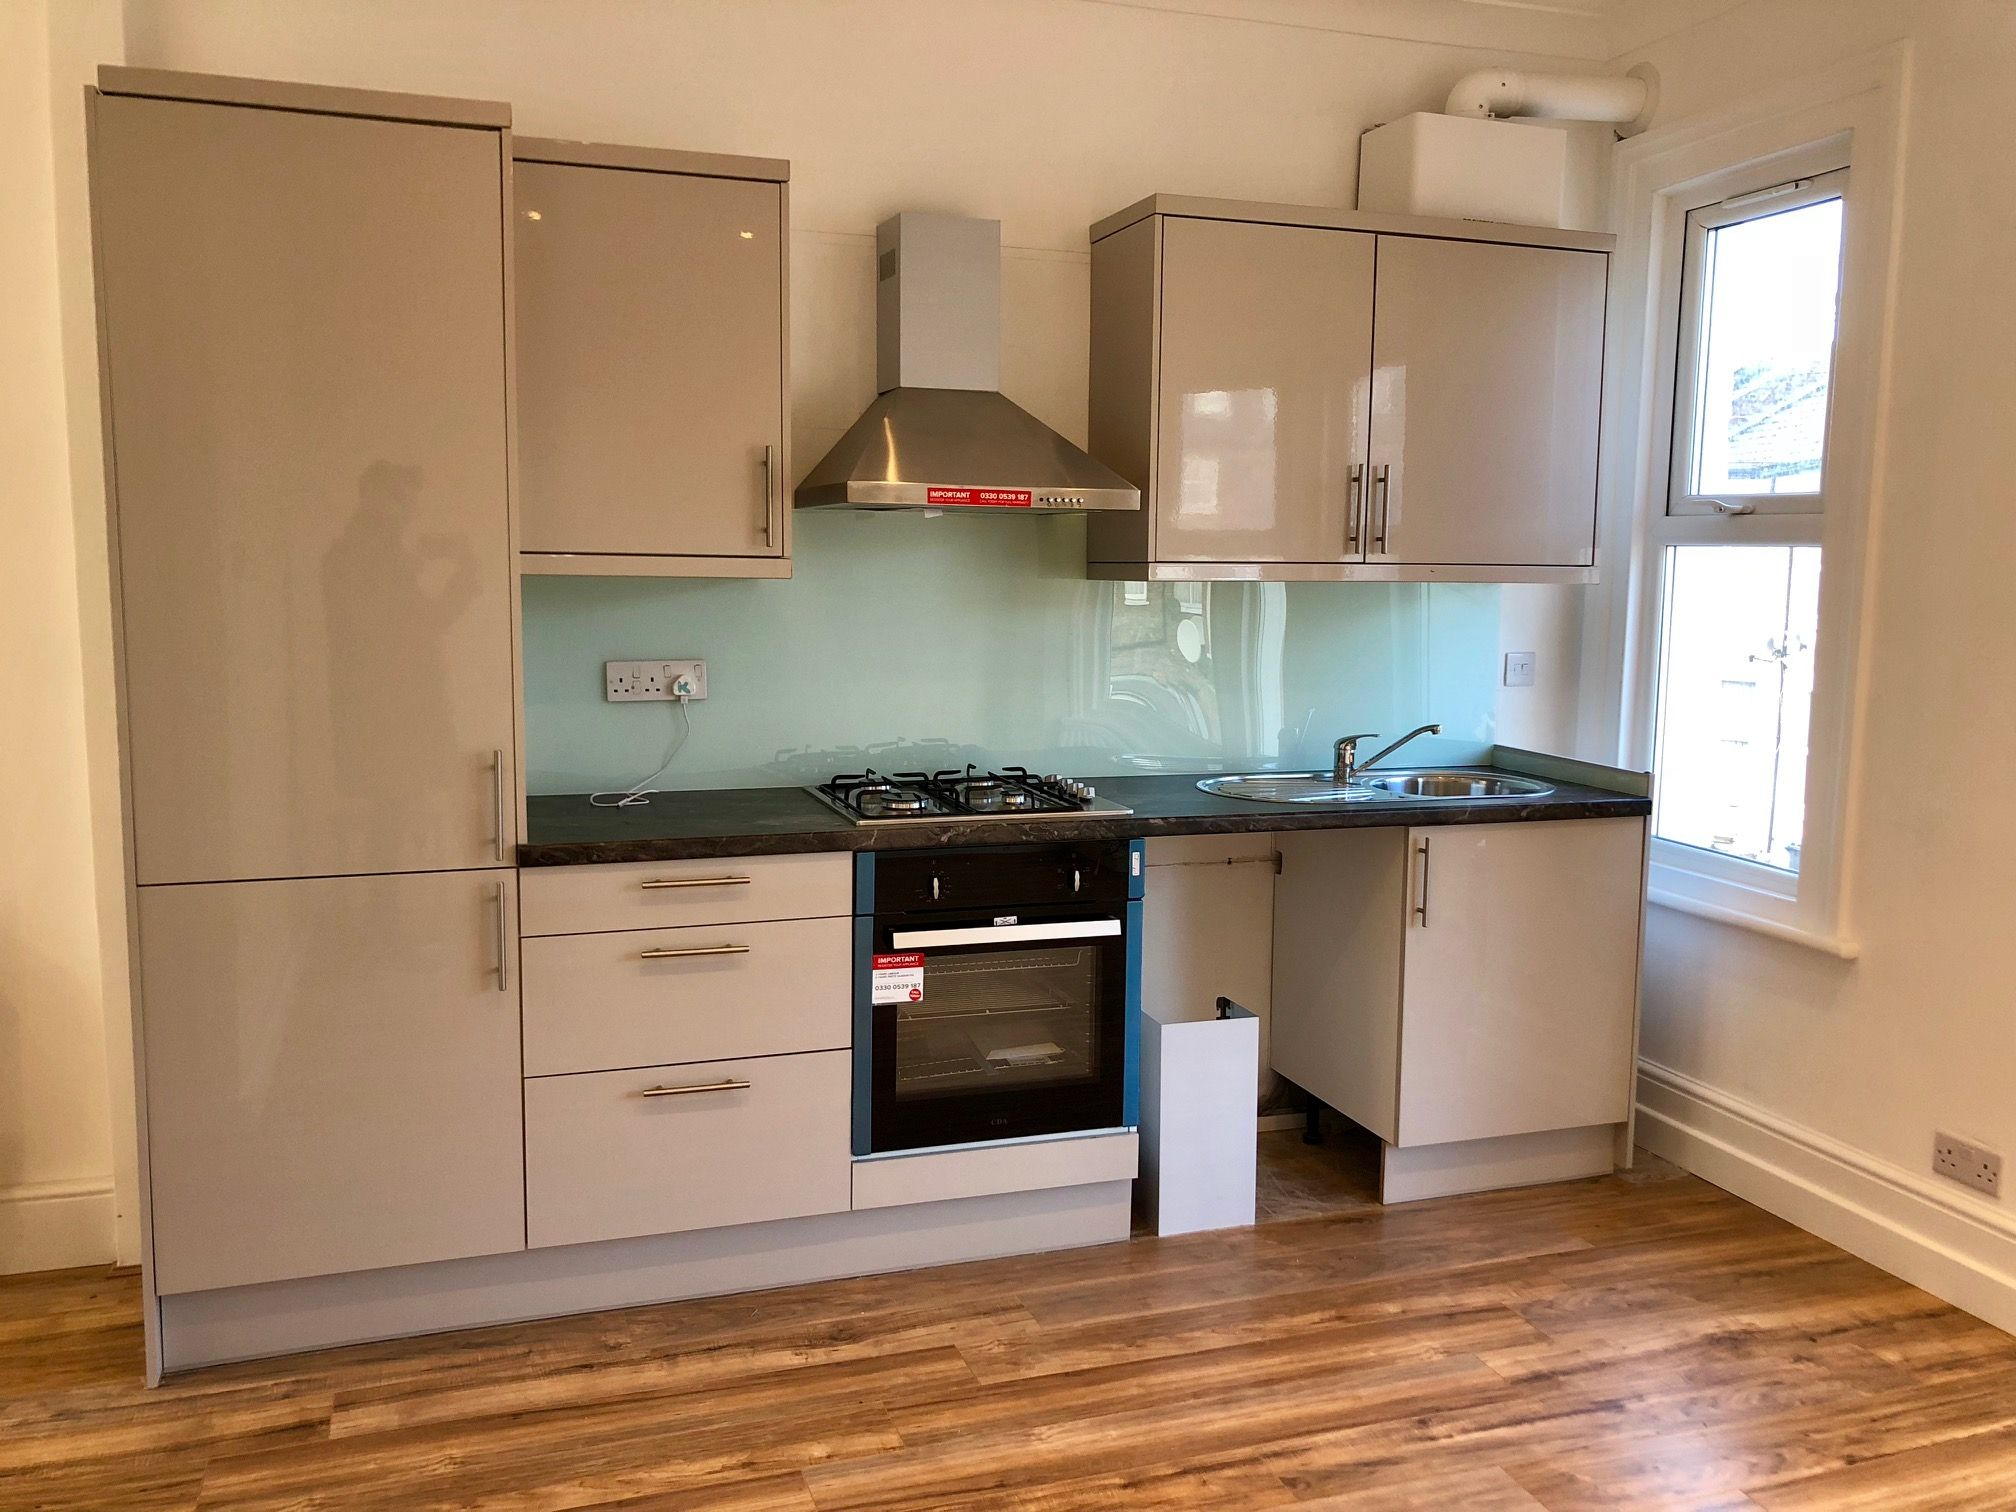 3 bedroom flat flat/apartment To Let in London - FULLY FITTED KITCHEN